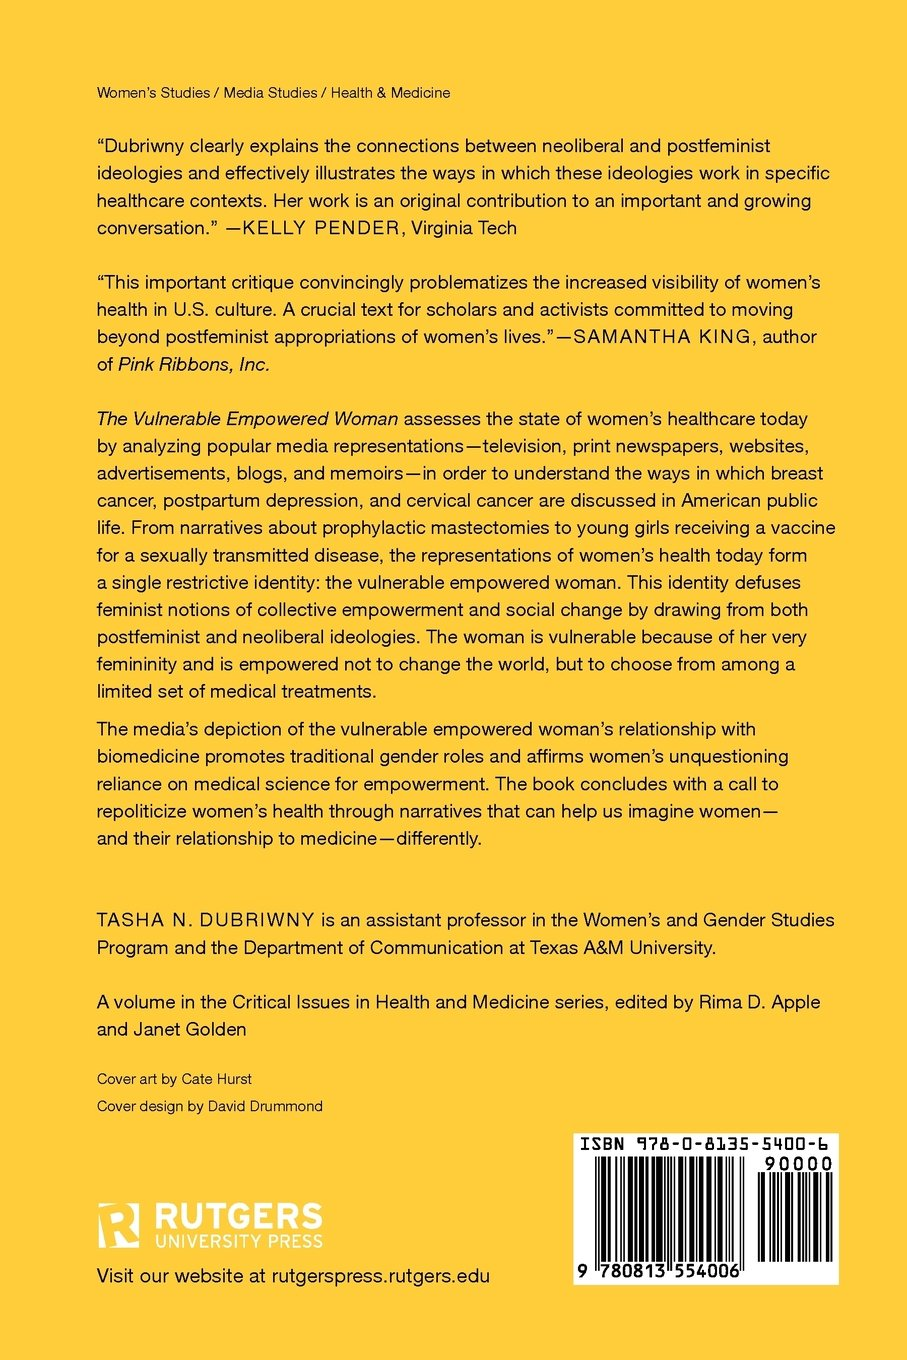 The Vulnerable Empowered Woman: Feminism, Postfeminism, and Women's Health (Critical Issues in Health and Medicine) by Brand: Rutgers University Press